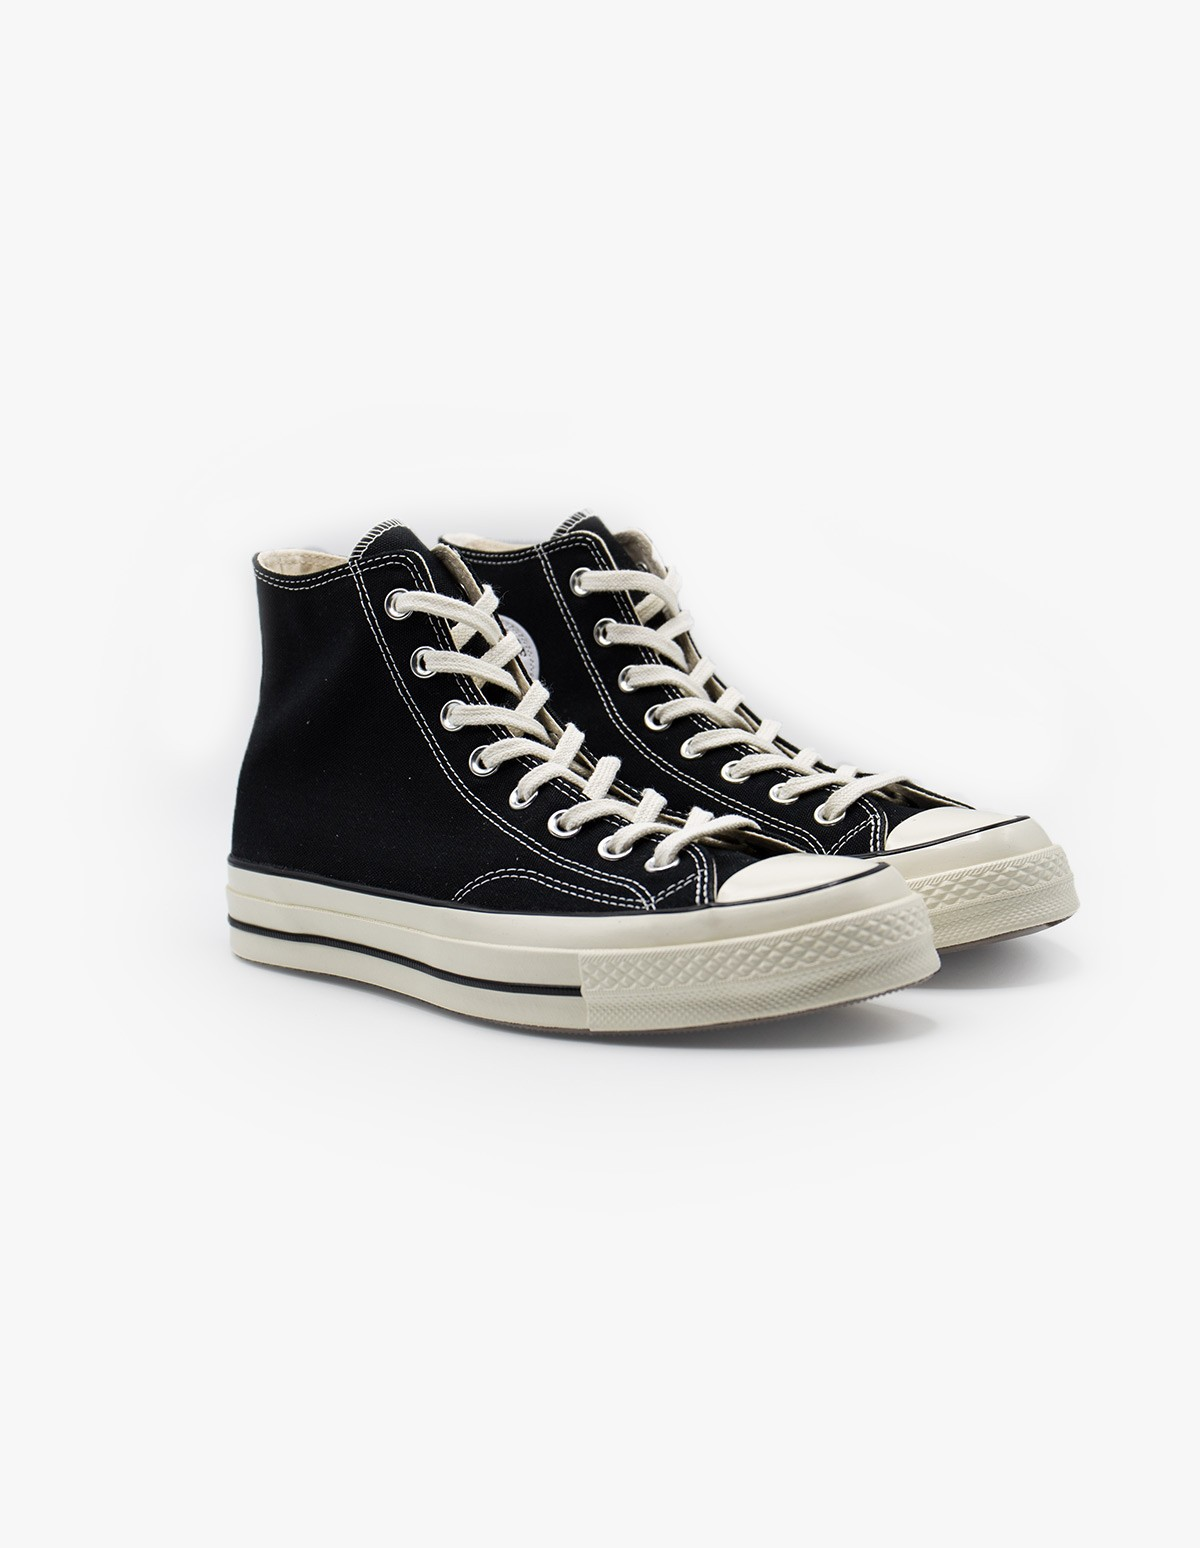 Converse Chuck Taylor High All Star '70 in Black